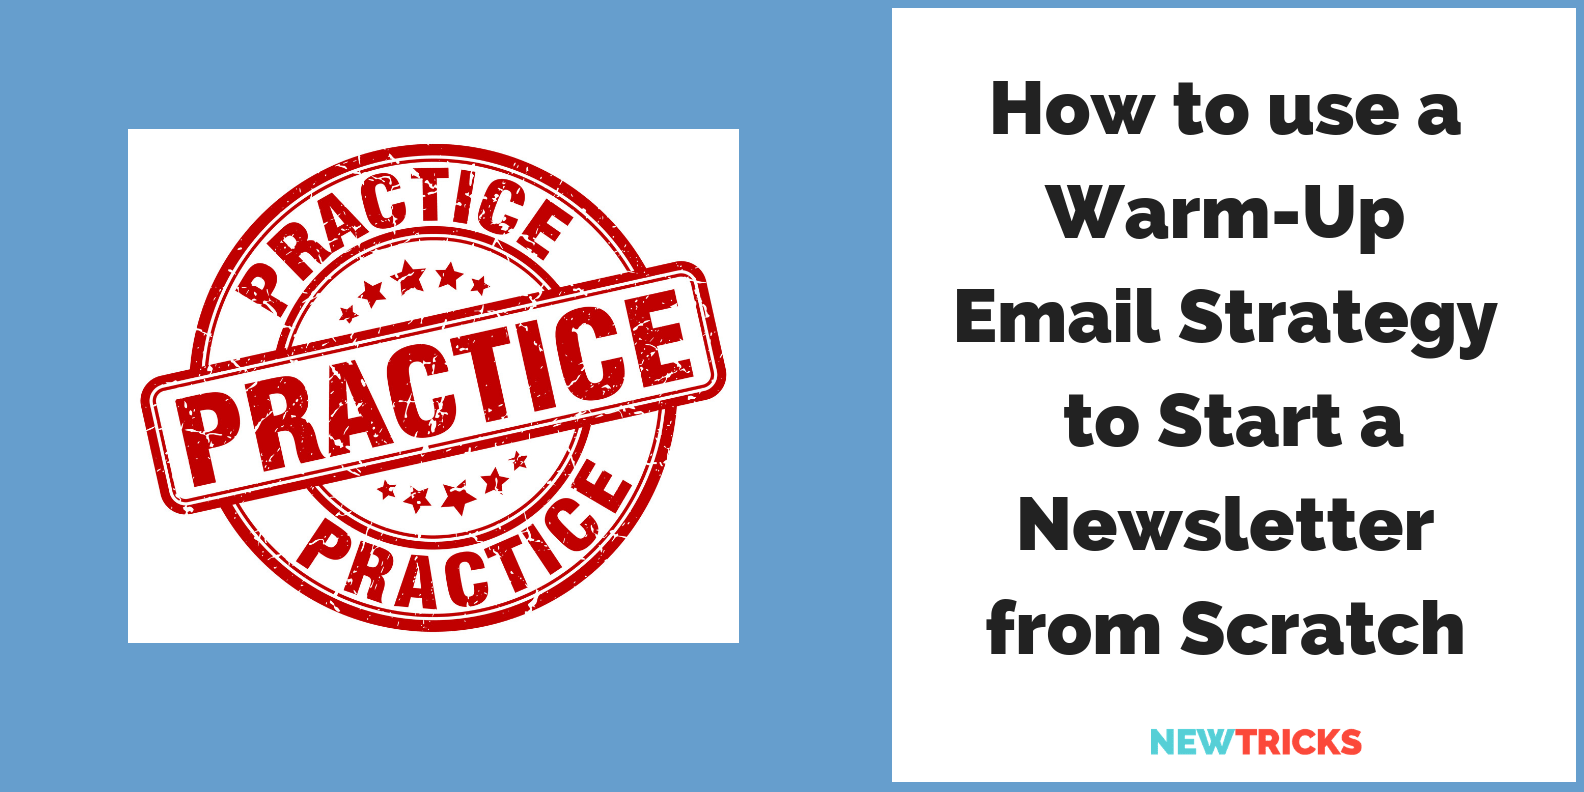 Warm-Up Email Strategy